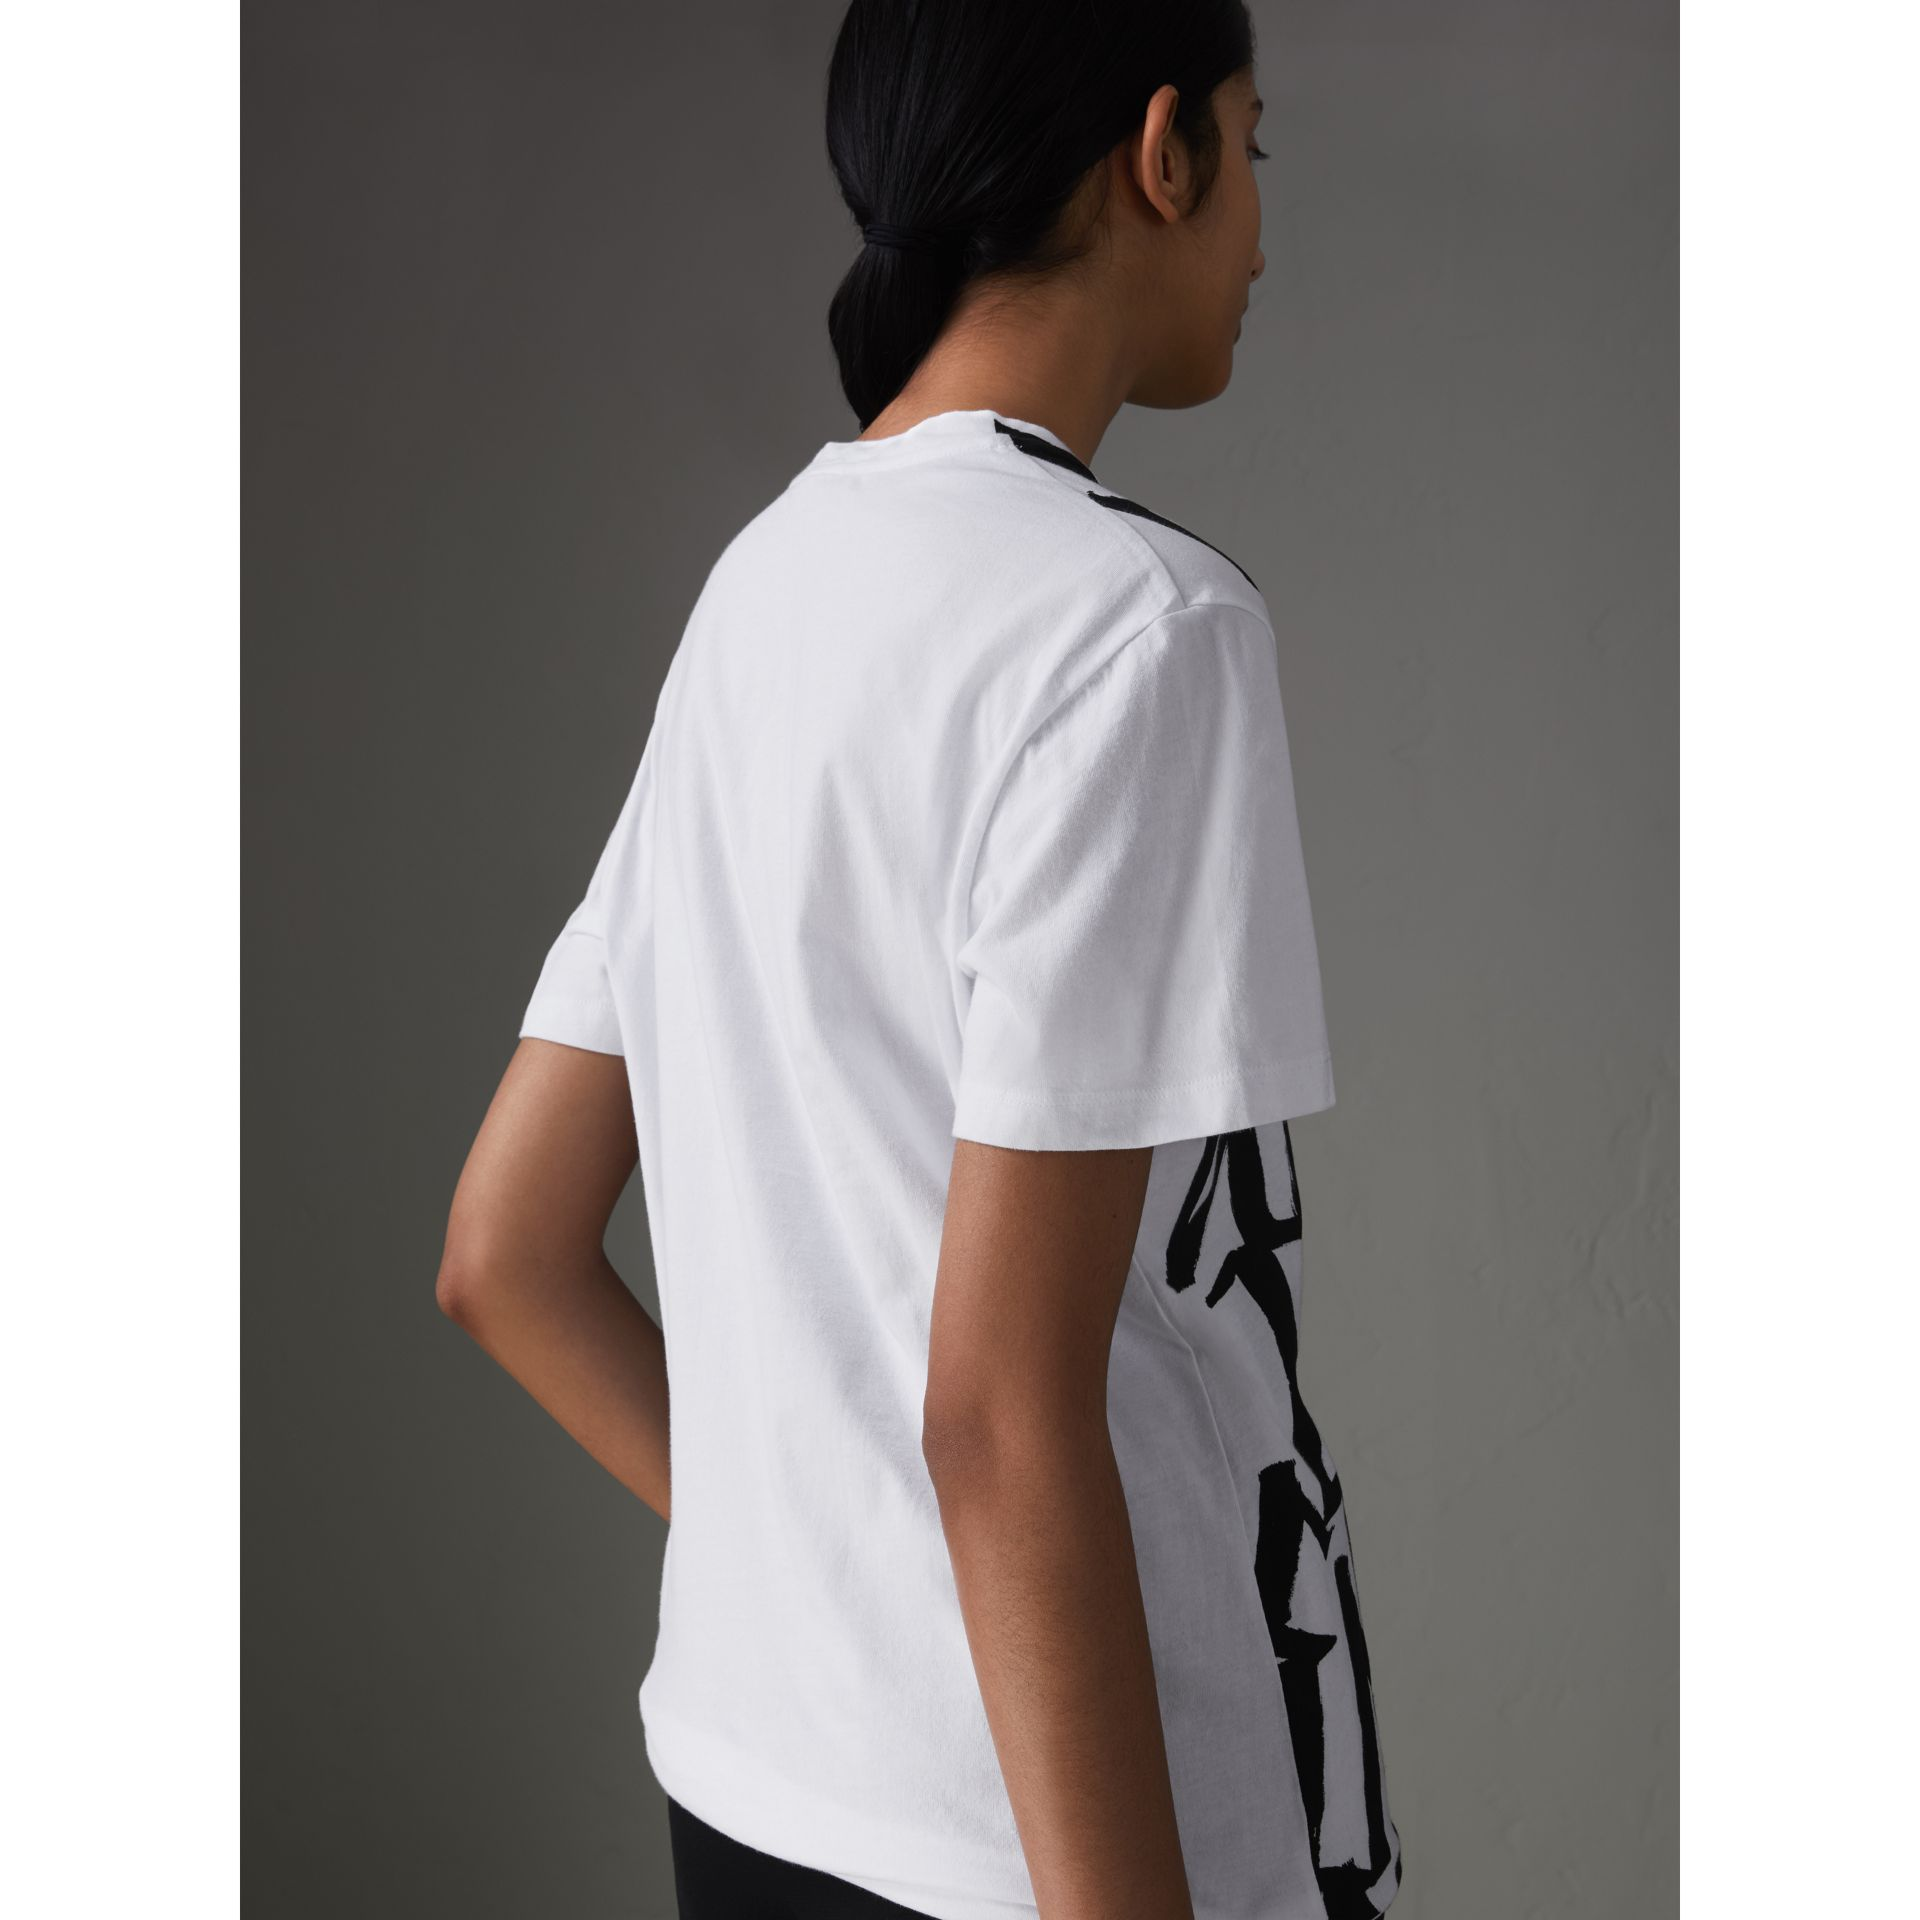 Graffiti Print T-shirt in White - Women | Burberry Singapore - gallery image 2